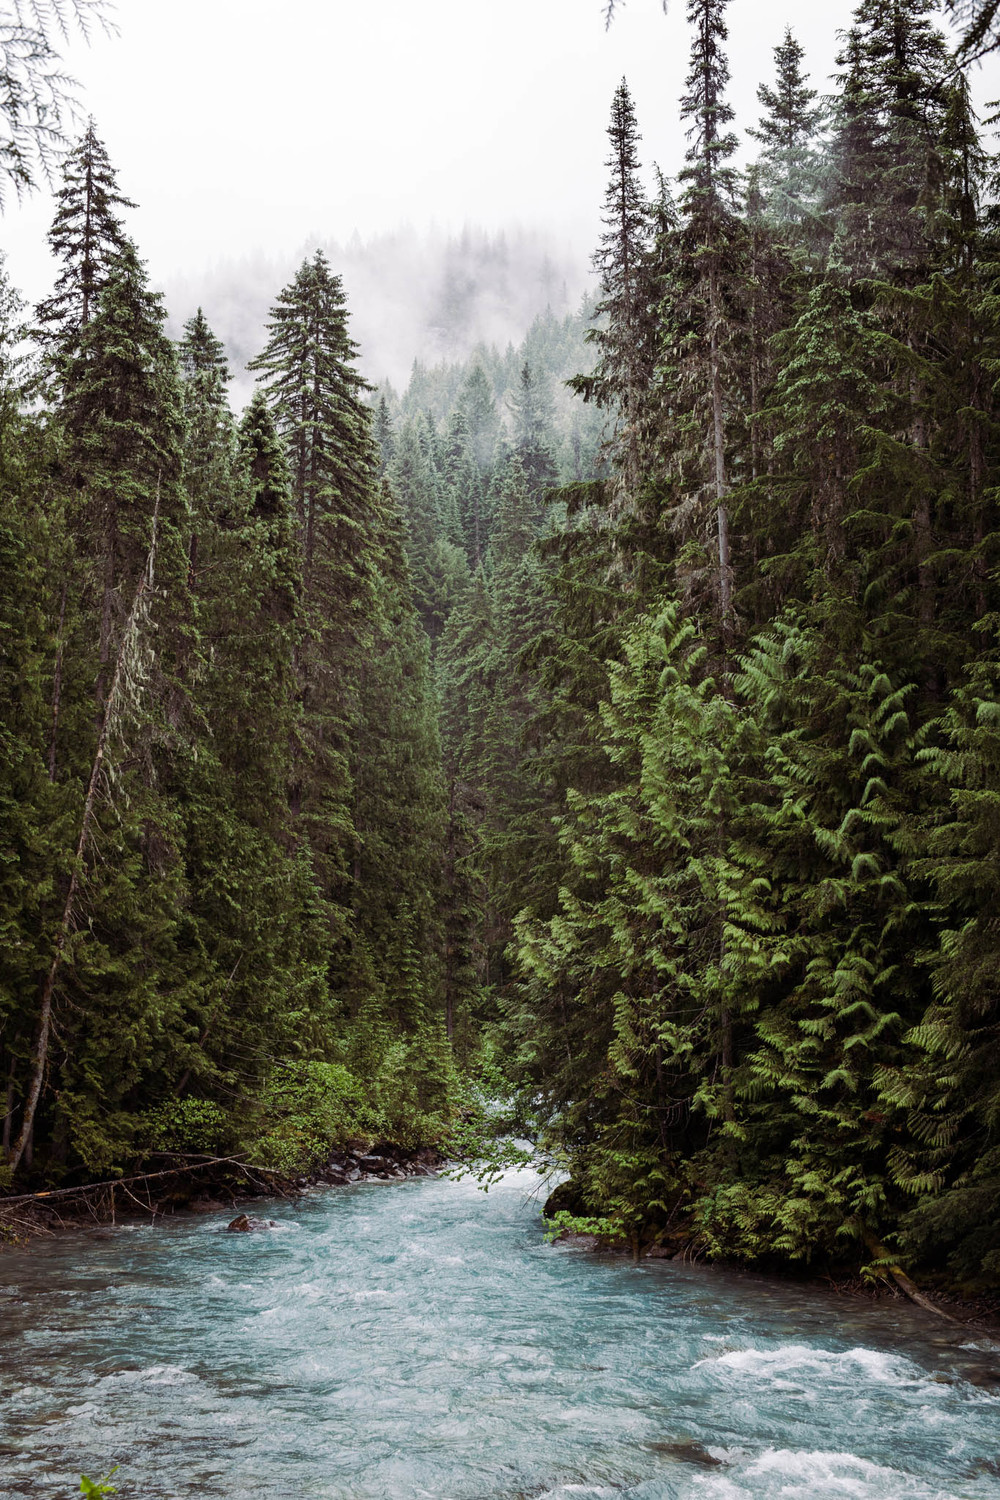 Robson River is never far from the trail, with a number of rapids thundering along the way.